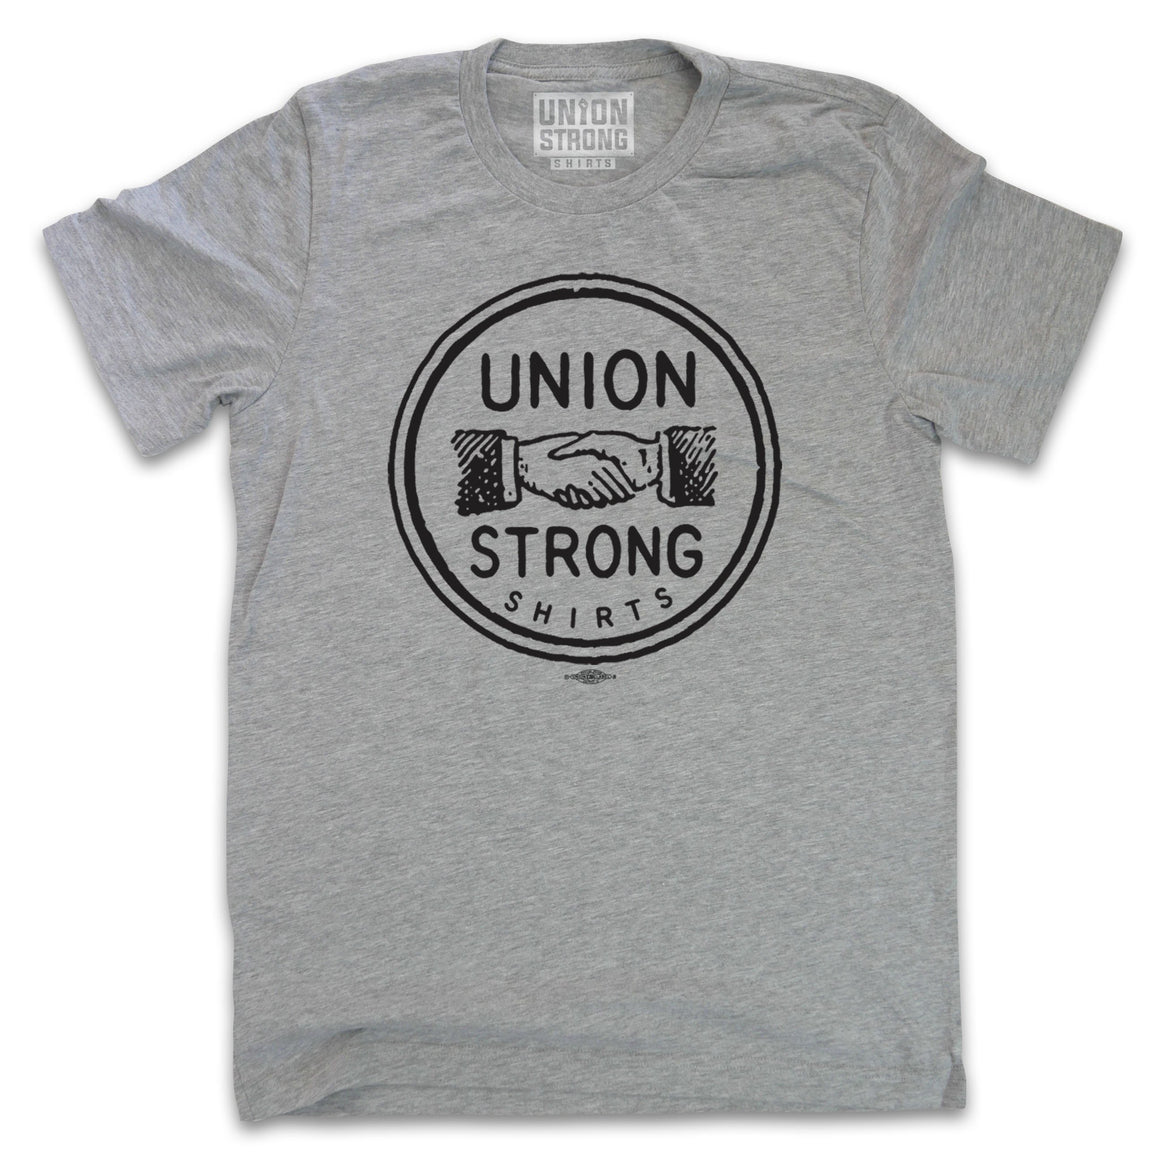 Union Strong Shirts - Classic Stamp Logo Shirts unionstrongshirts